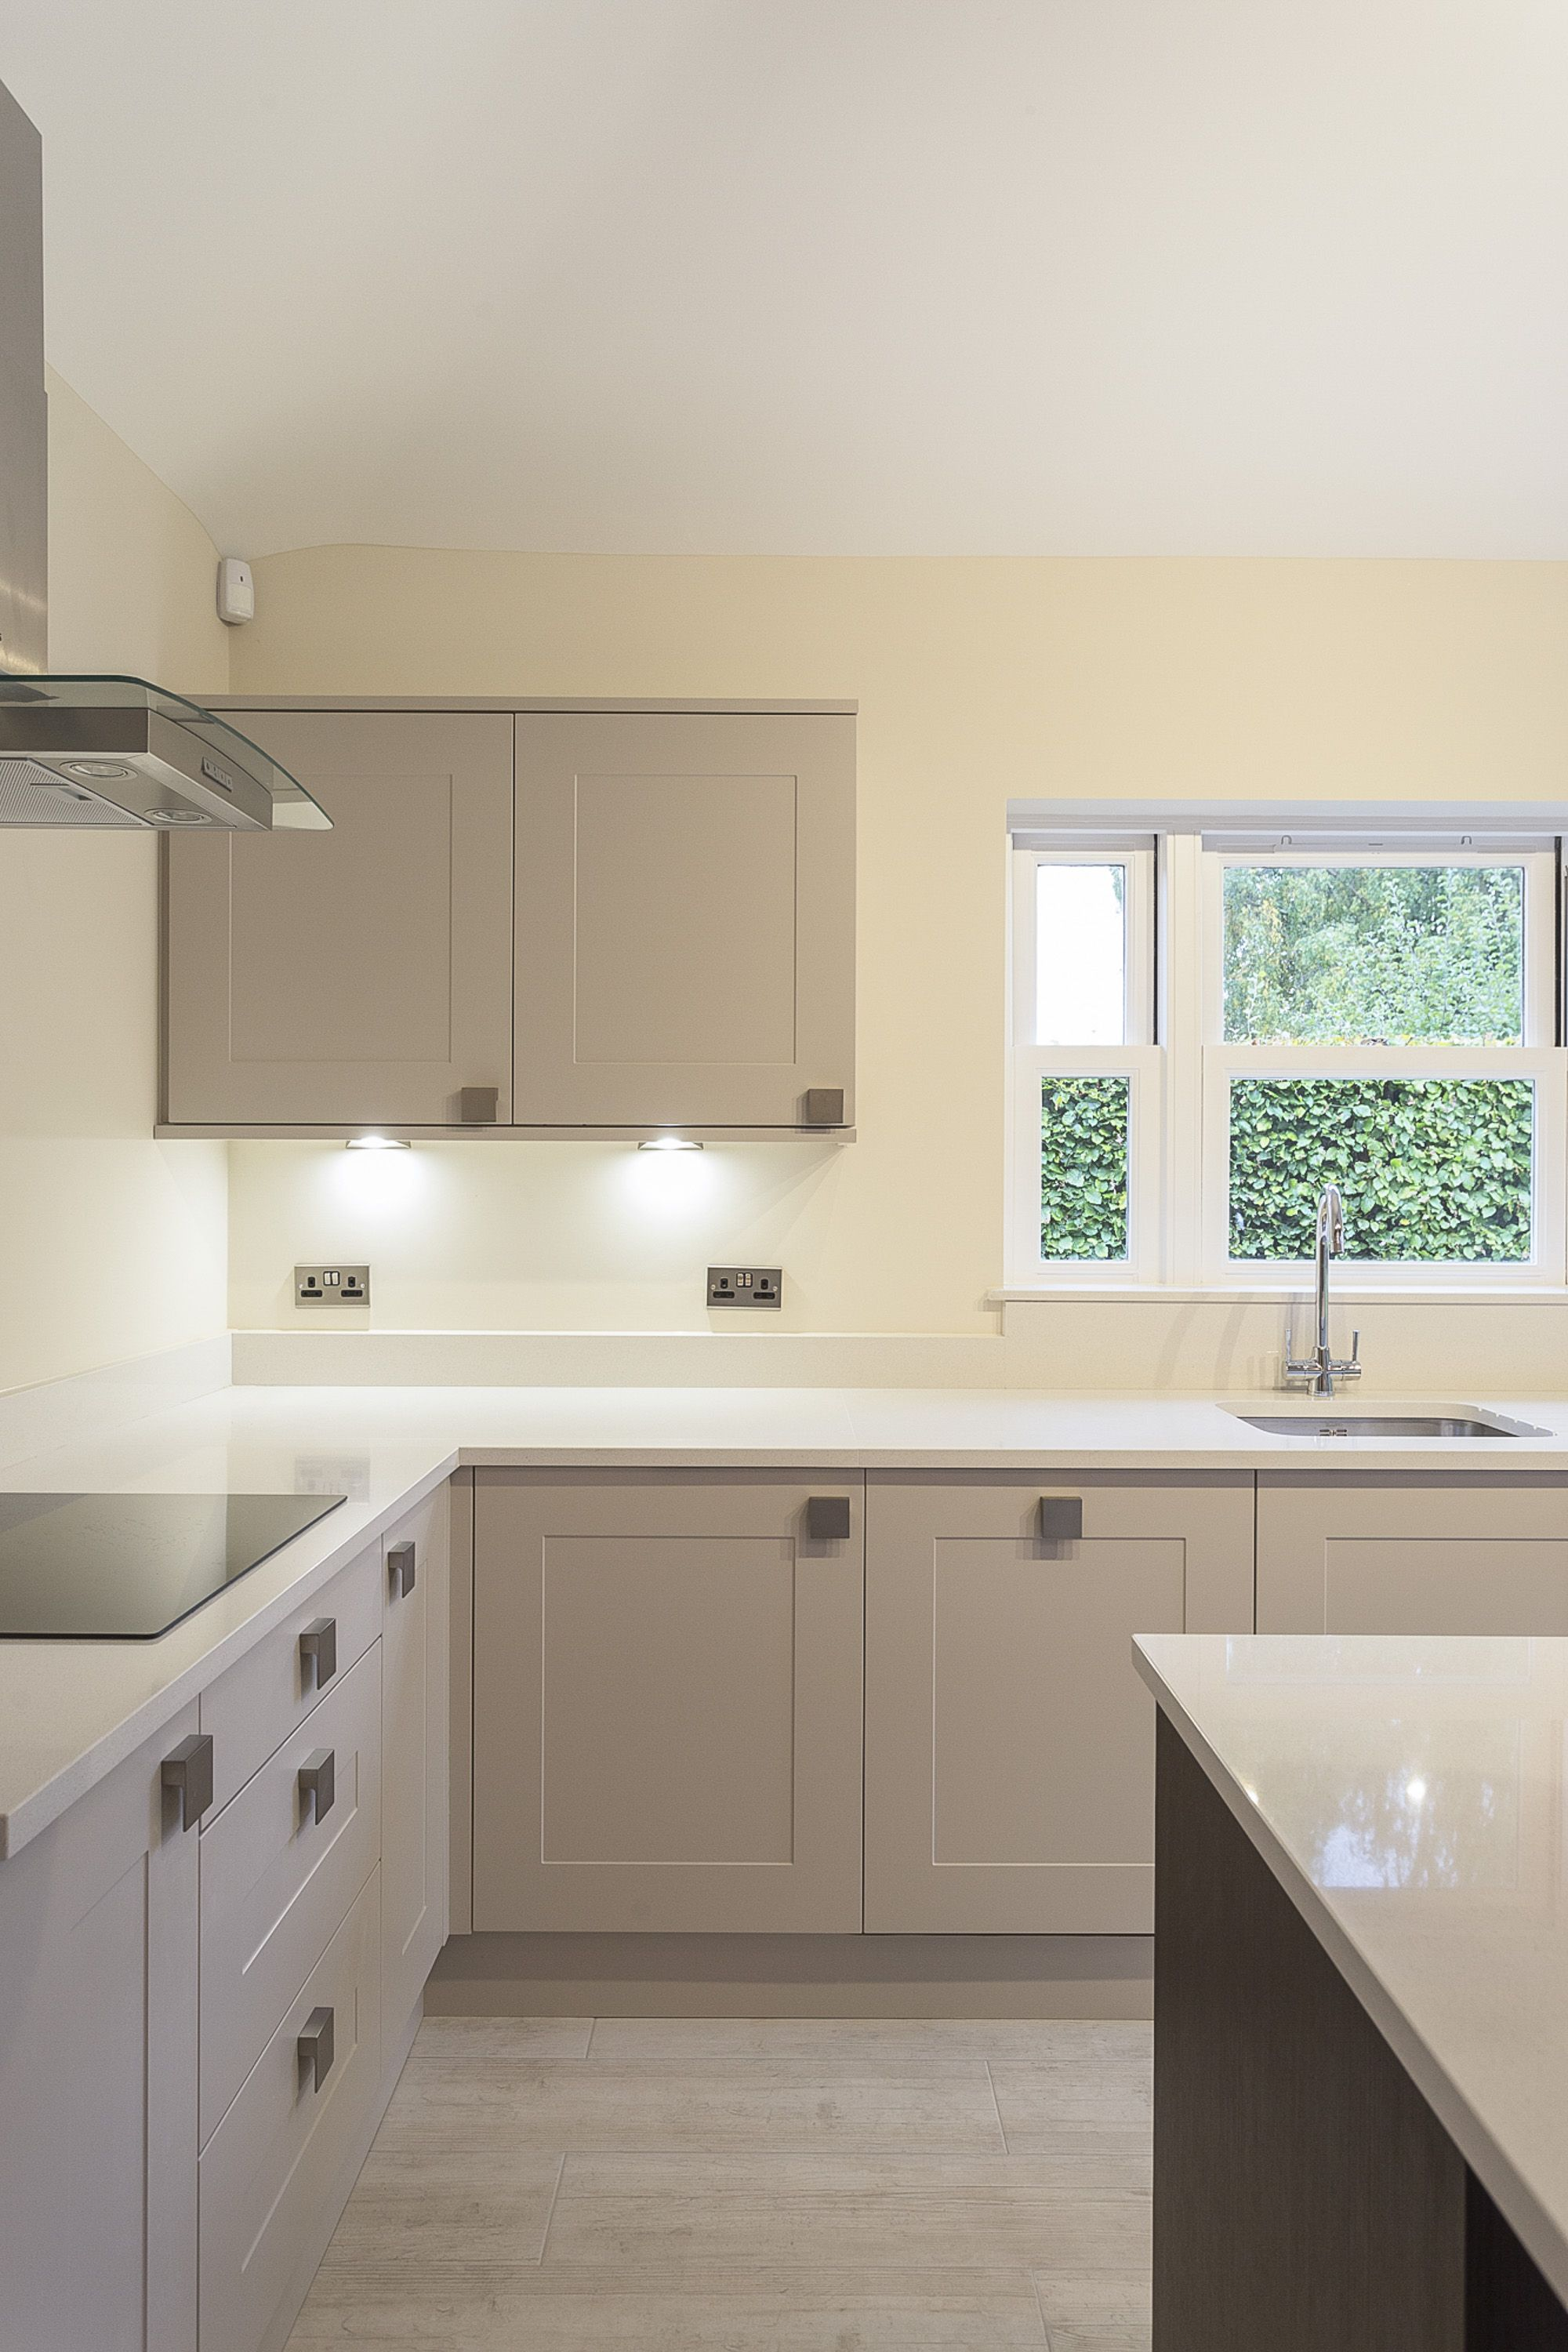 Beautiful Solent kitchen in Kashmir including Island in this